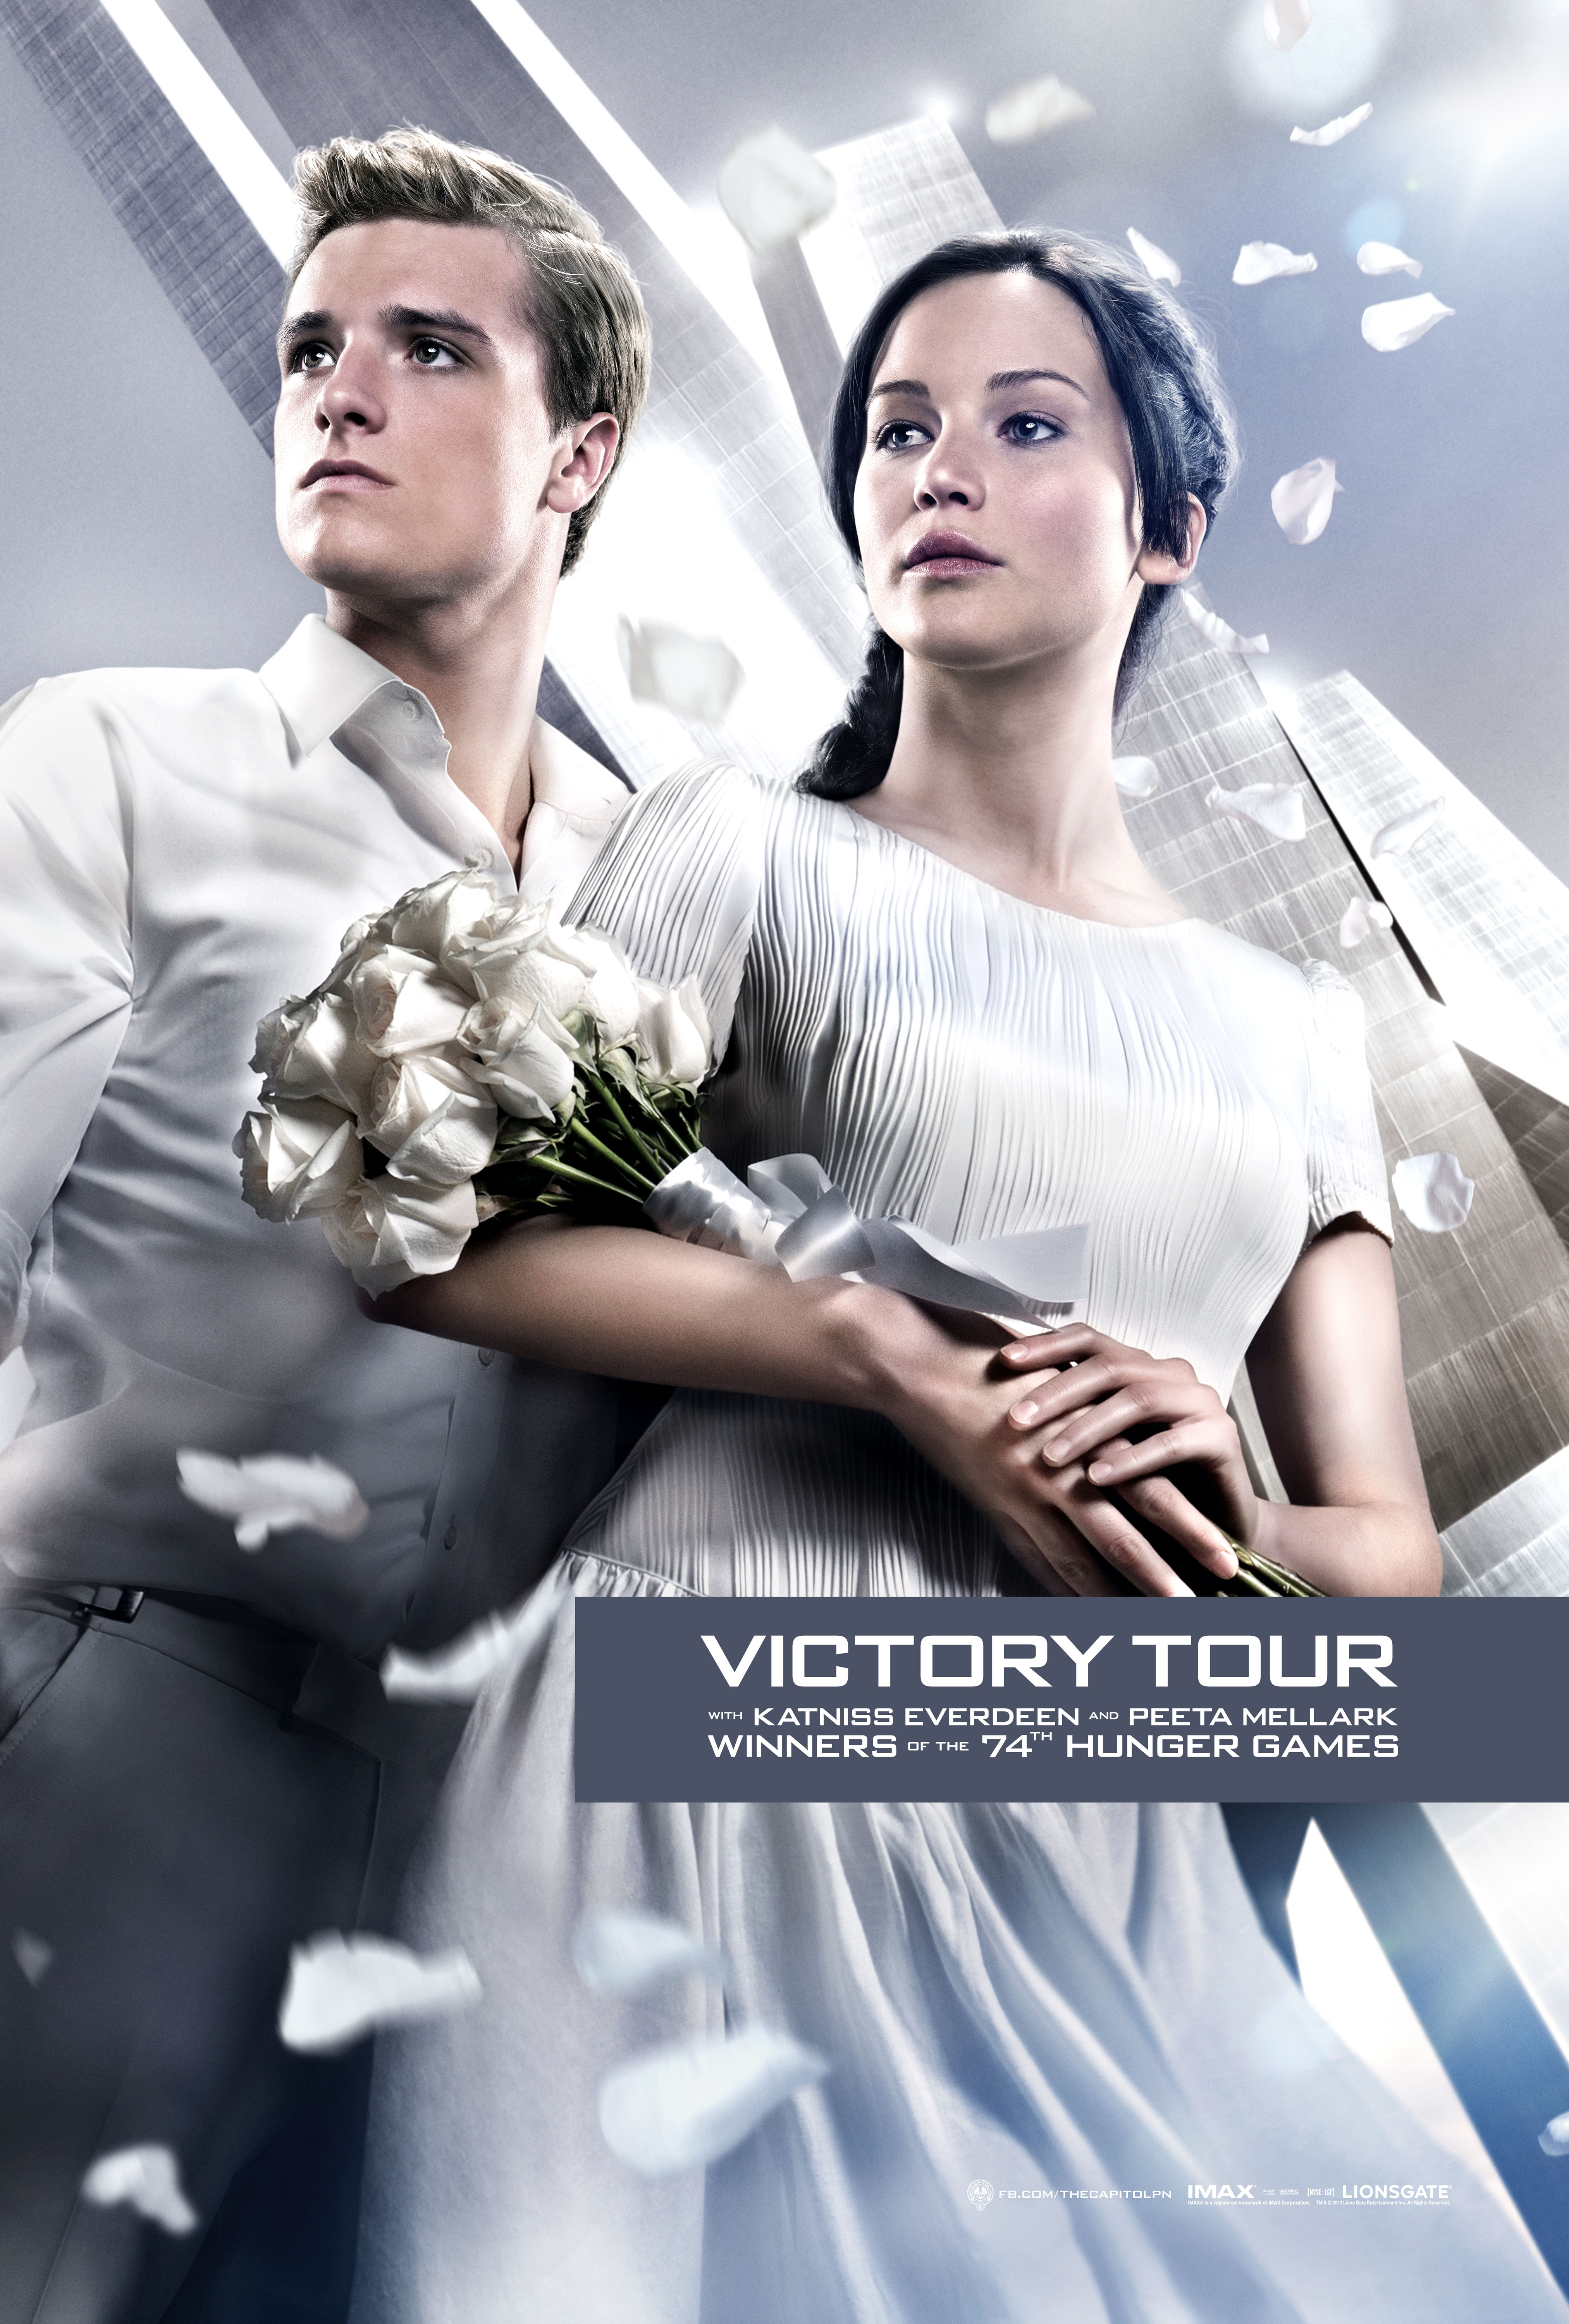 FIN02 Idiom 1Sht VT CloseUp Trim Meet the Victors In New The Hunger Games: Catching Fire Victory Tour Posters